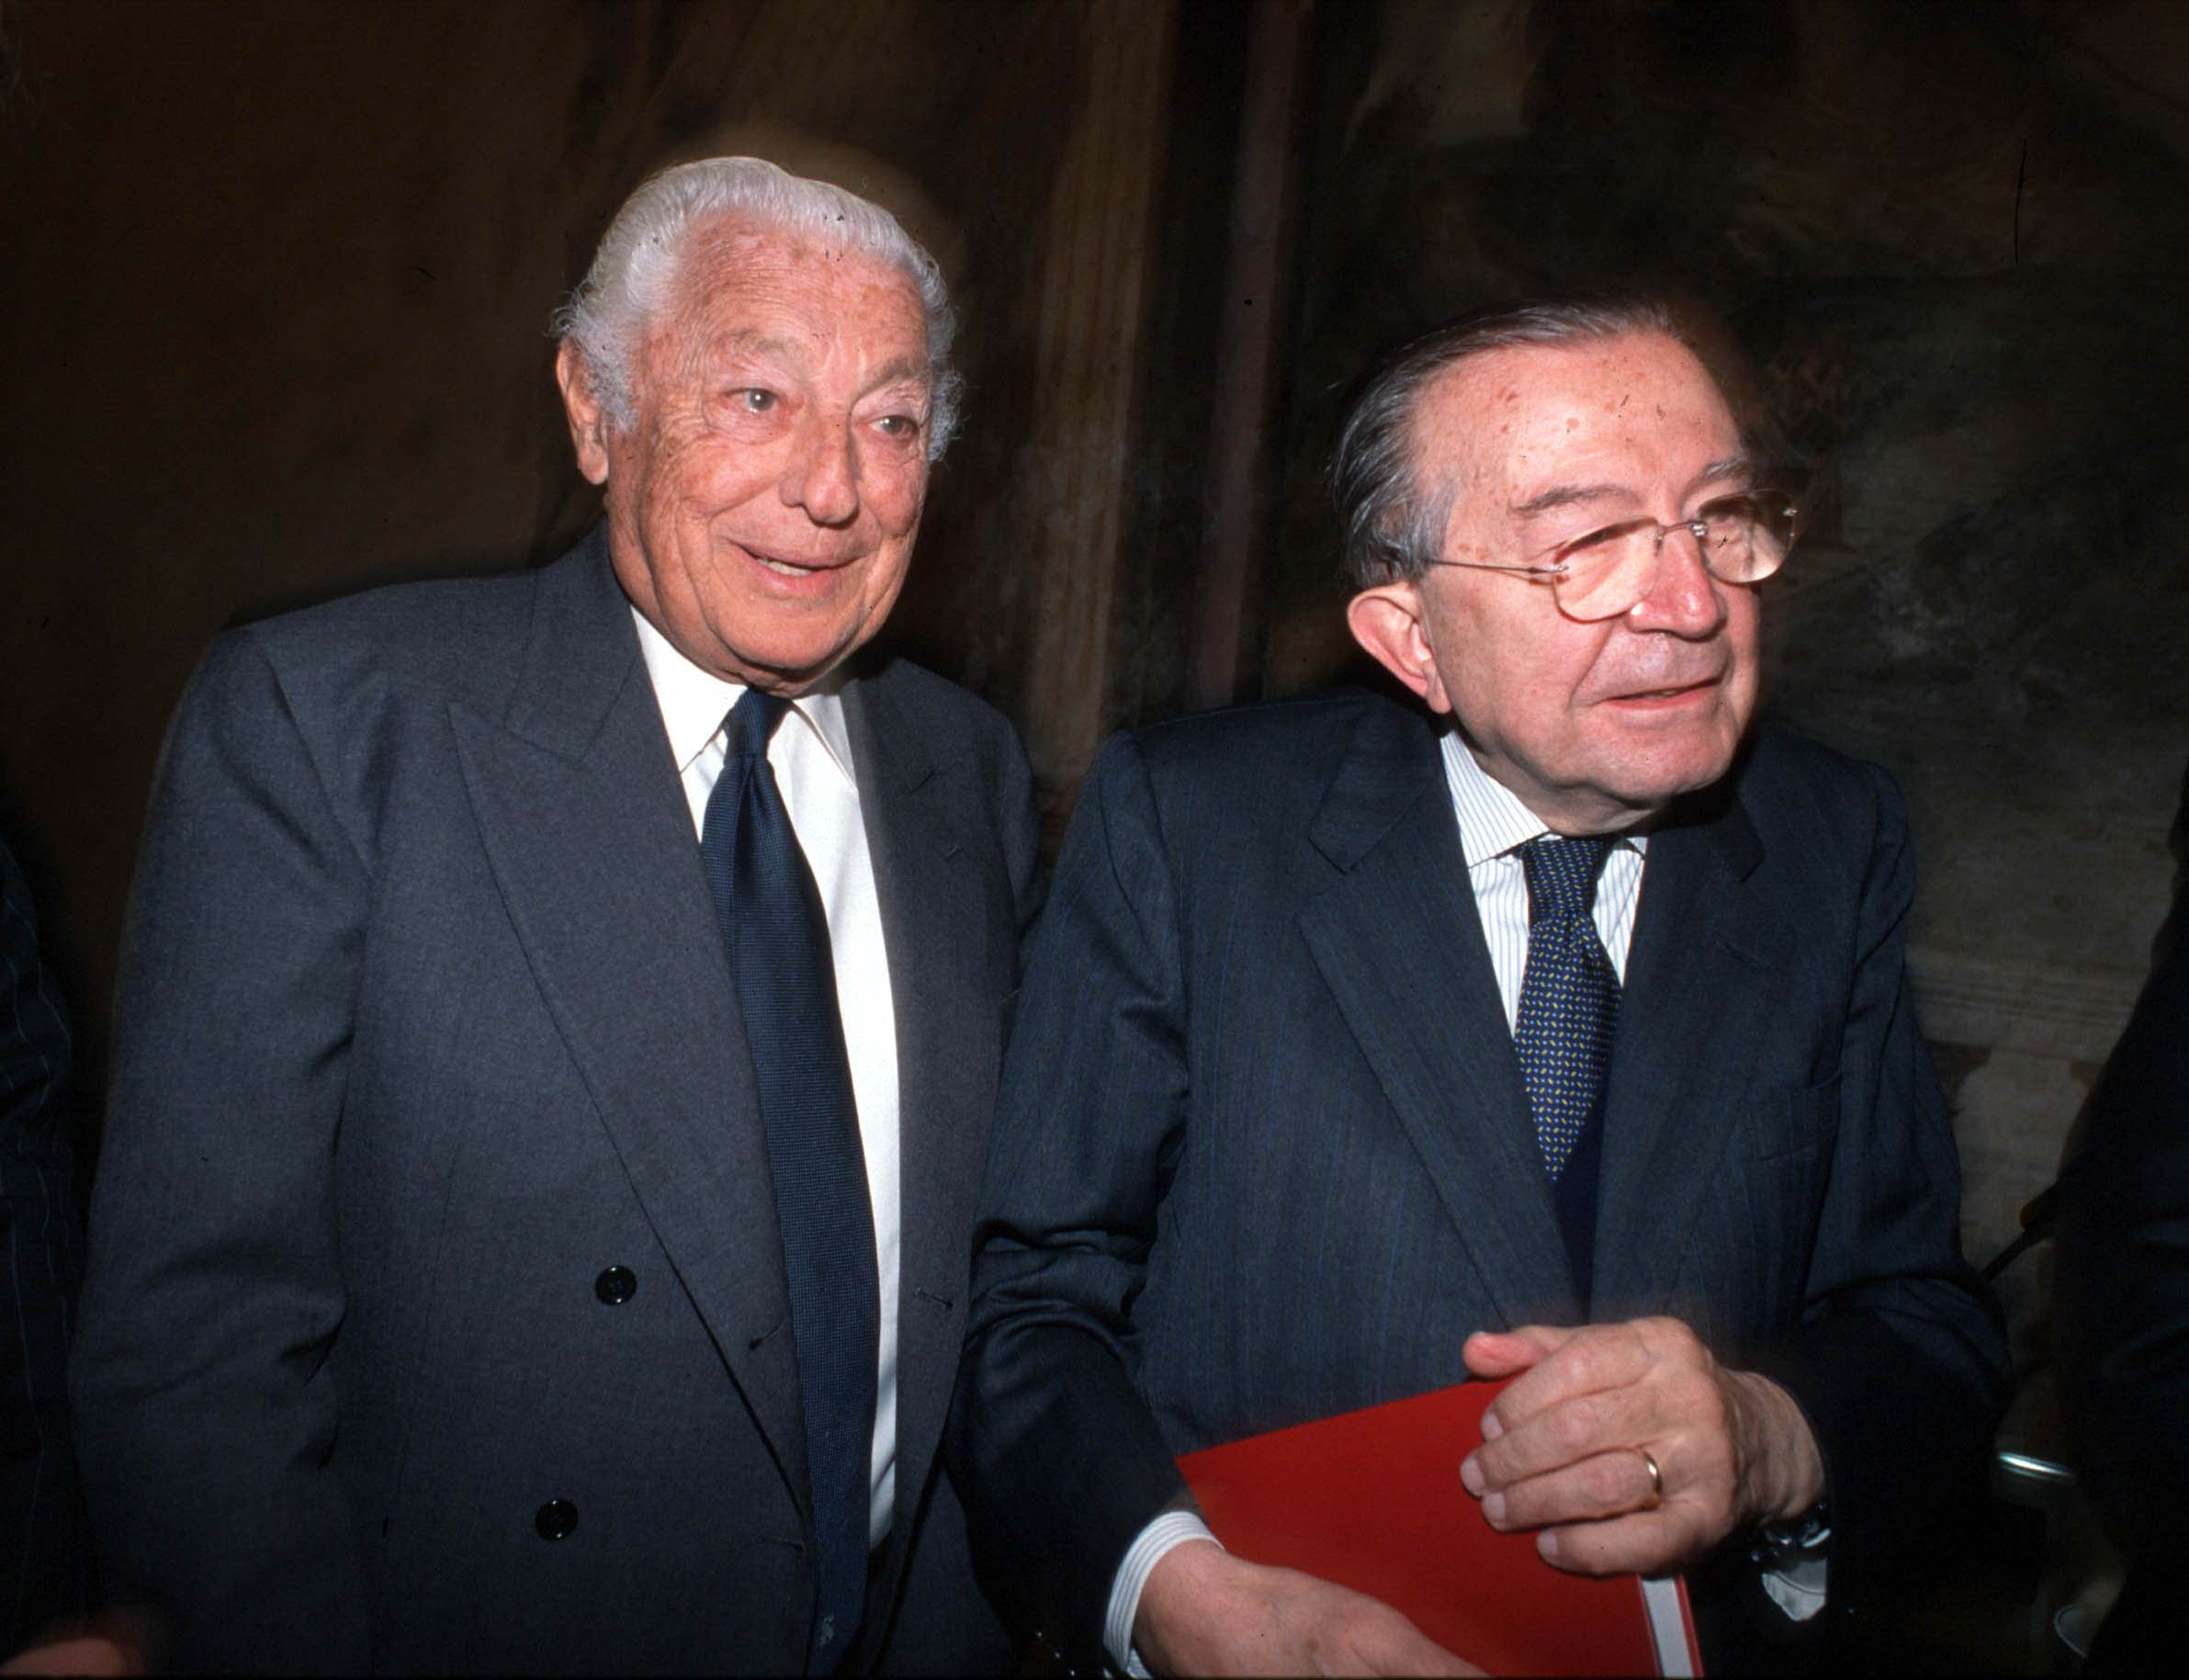 Life senators Gianni Rings and Giulio Andreotti